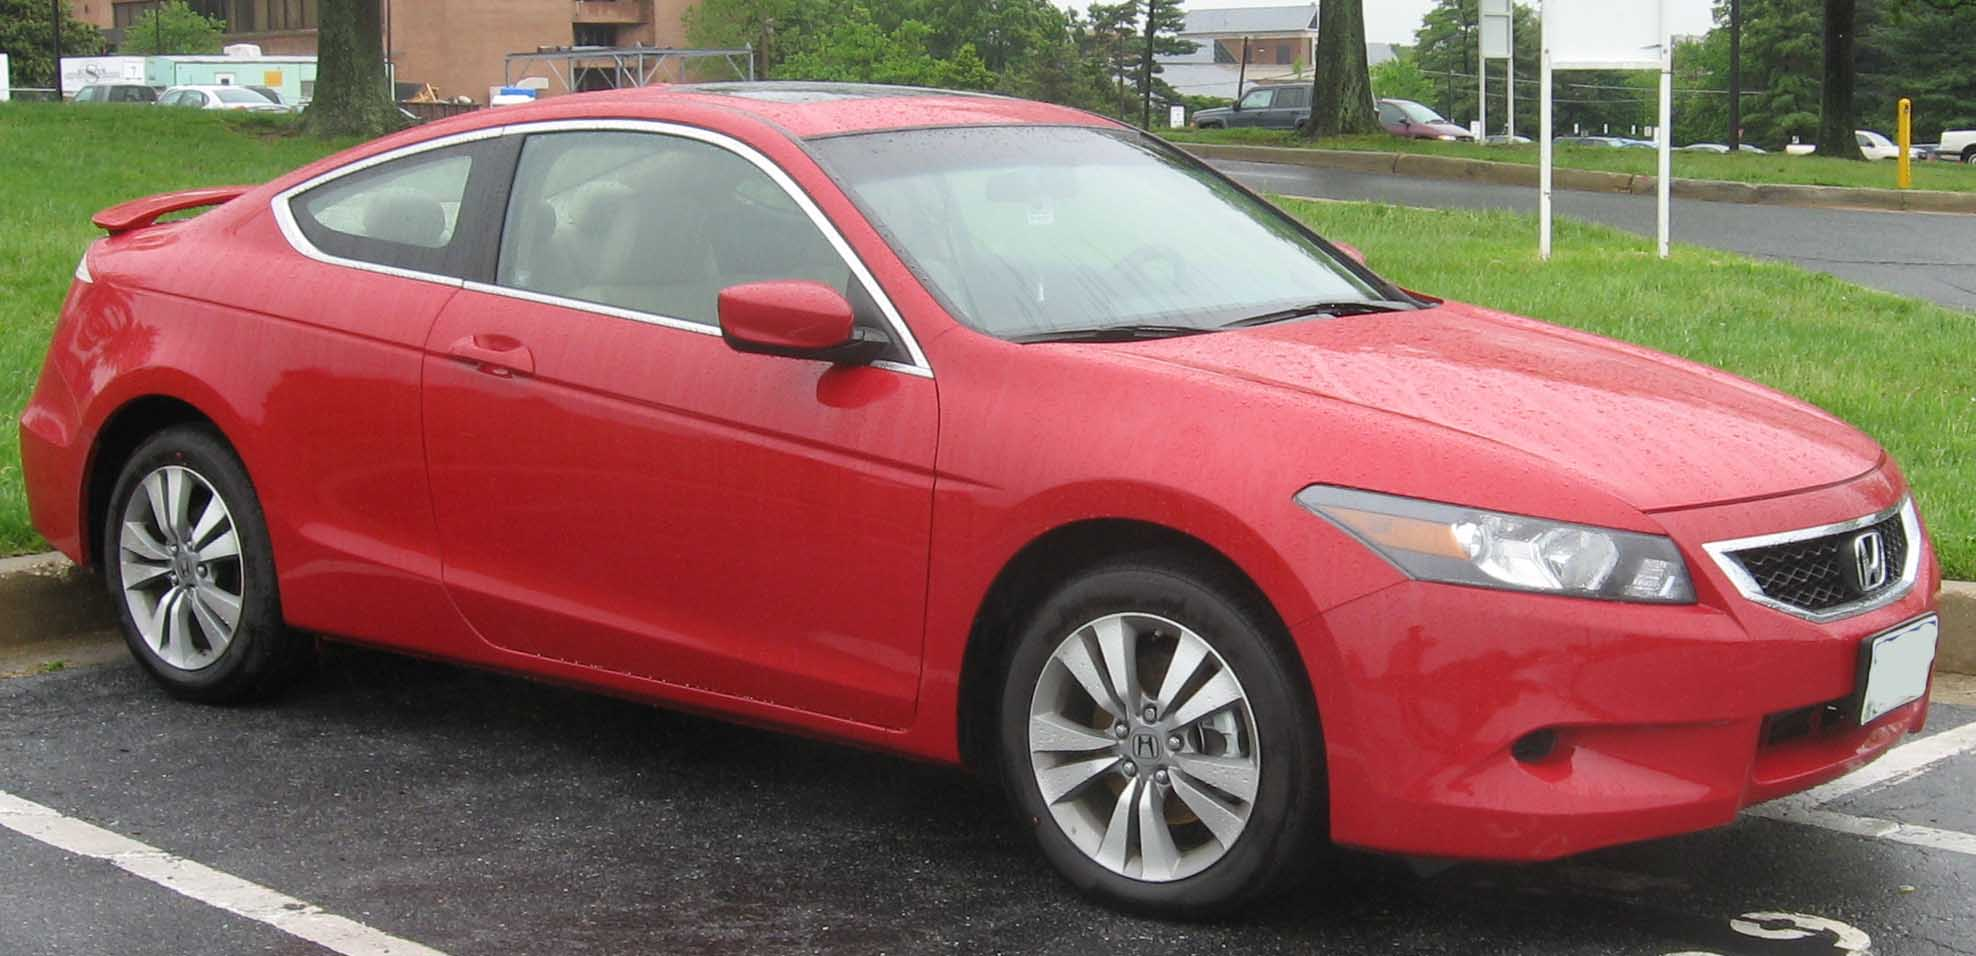 File:2008 Honda Accord coupe.jpg